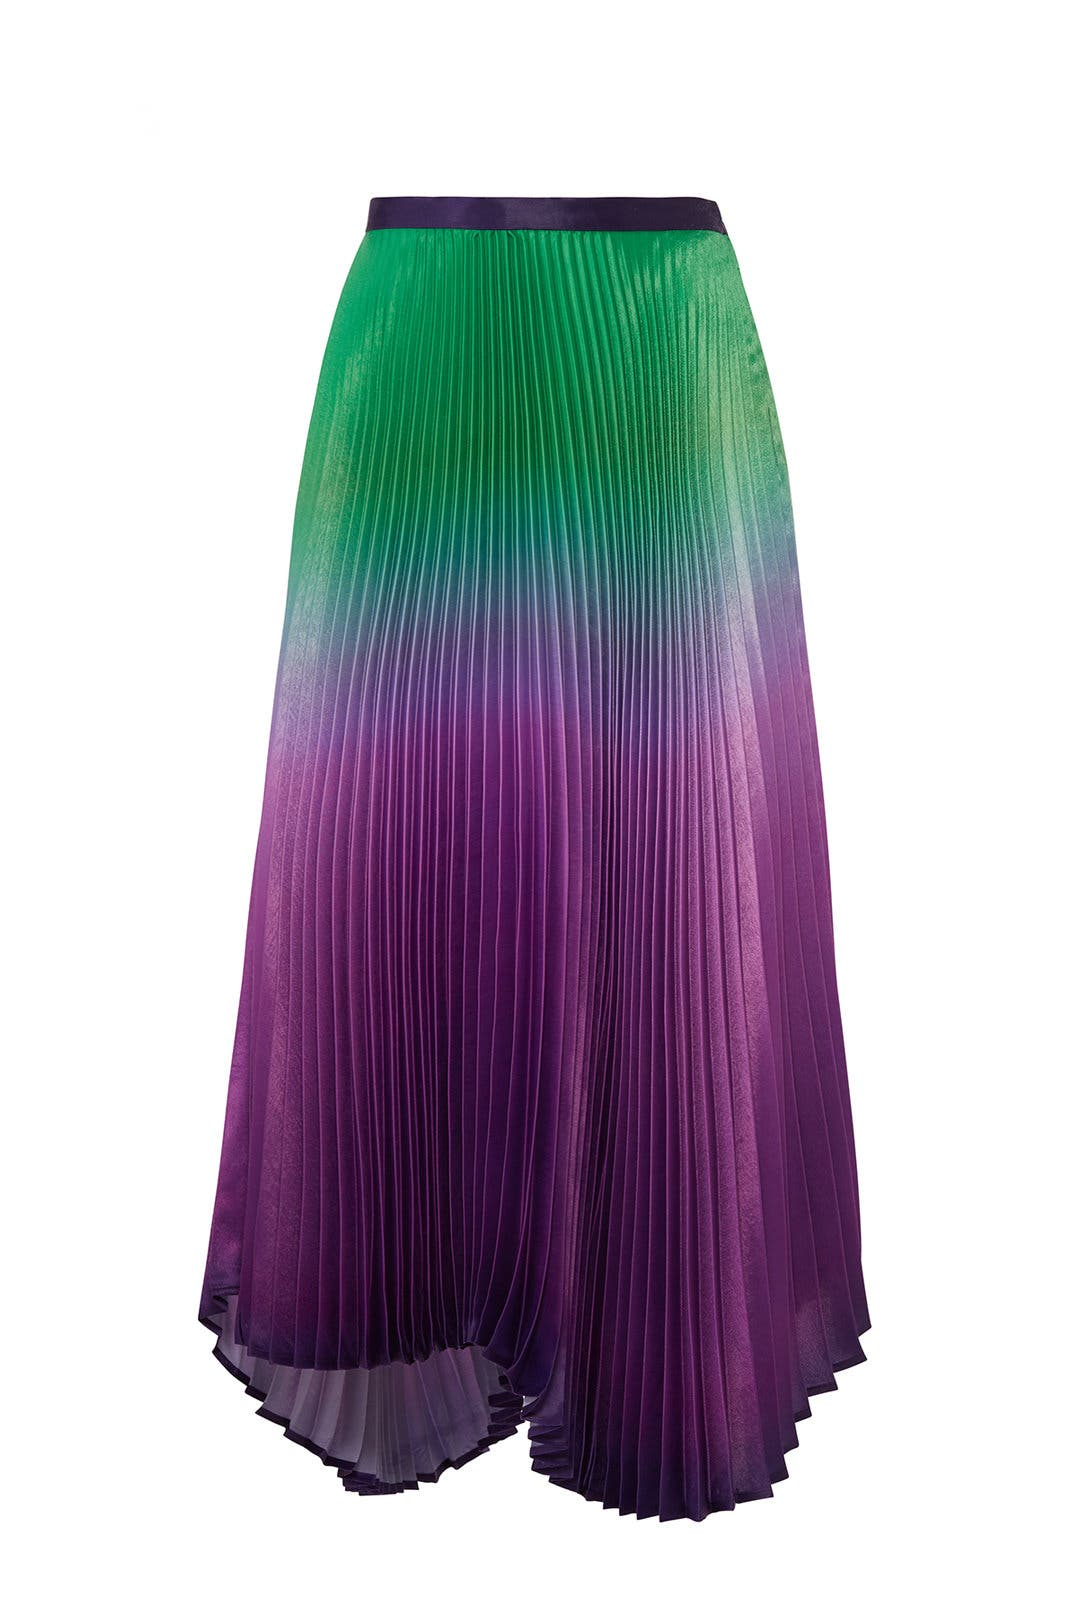 527453dac3 Pleated Ombre Clara Skirt by DELFI Collective for $70 - $80 | Rent the  Runway